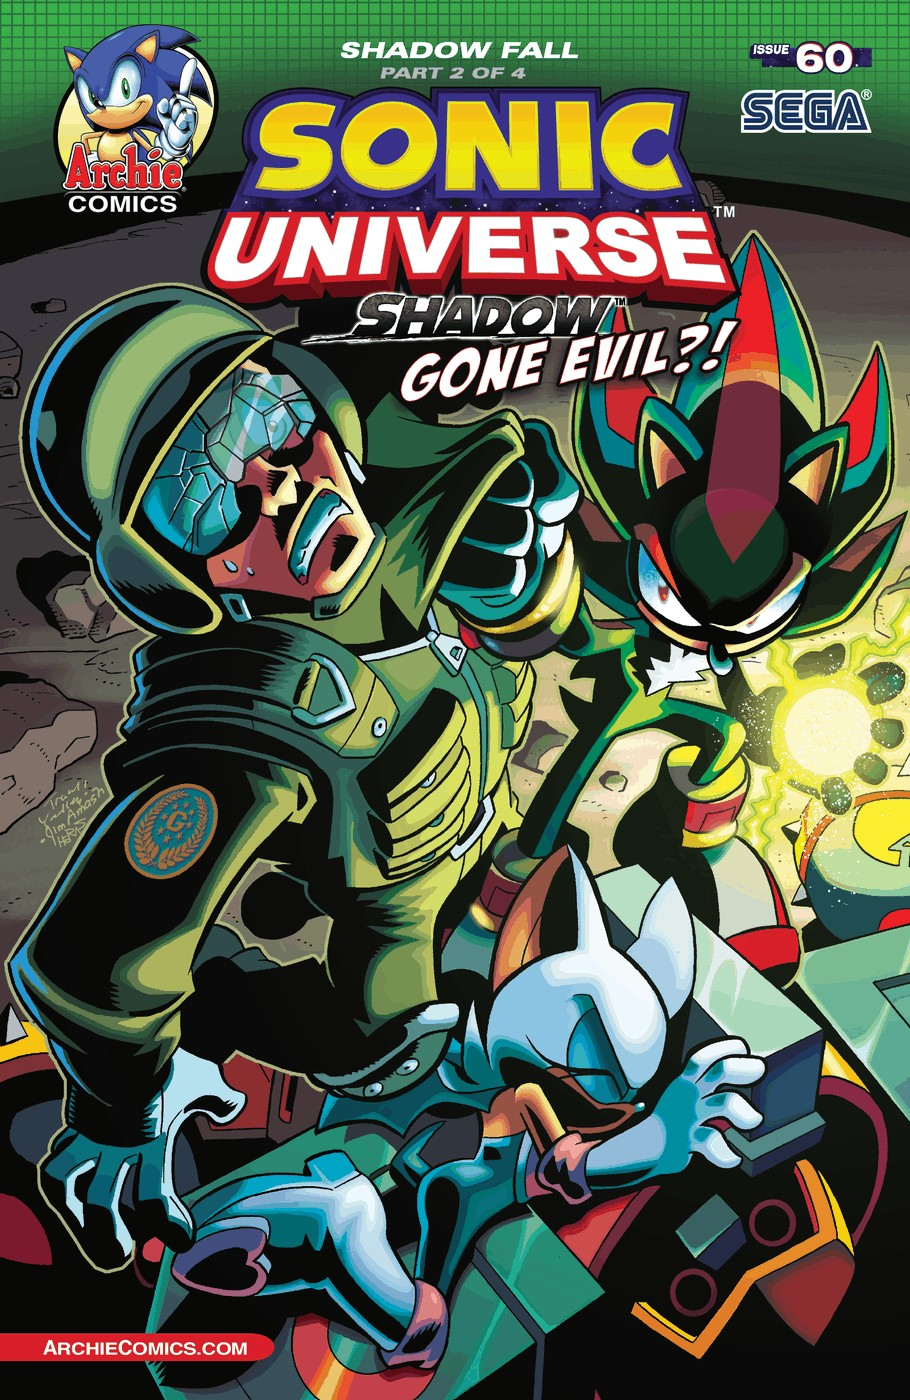 Sonic Universe Issue 60